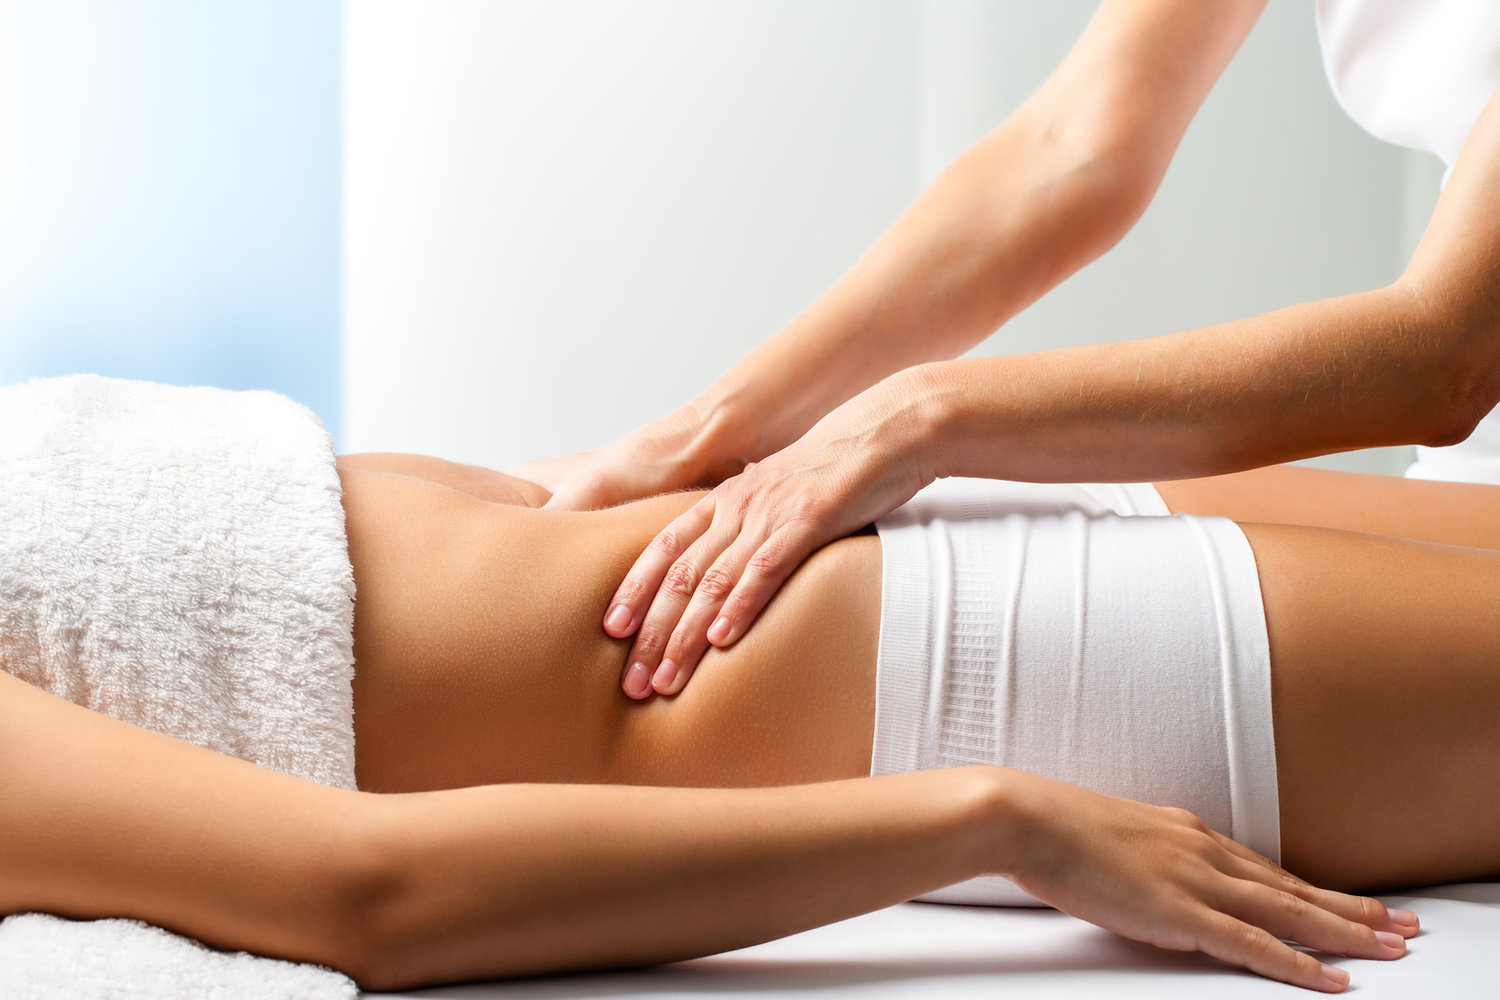 visceral-manipulation-bellevue-massage-therapy-spa-alexis.jpg